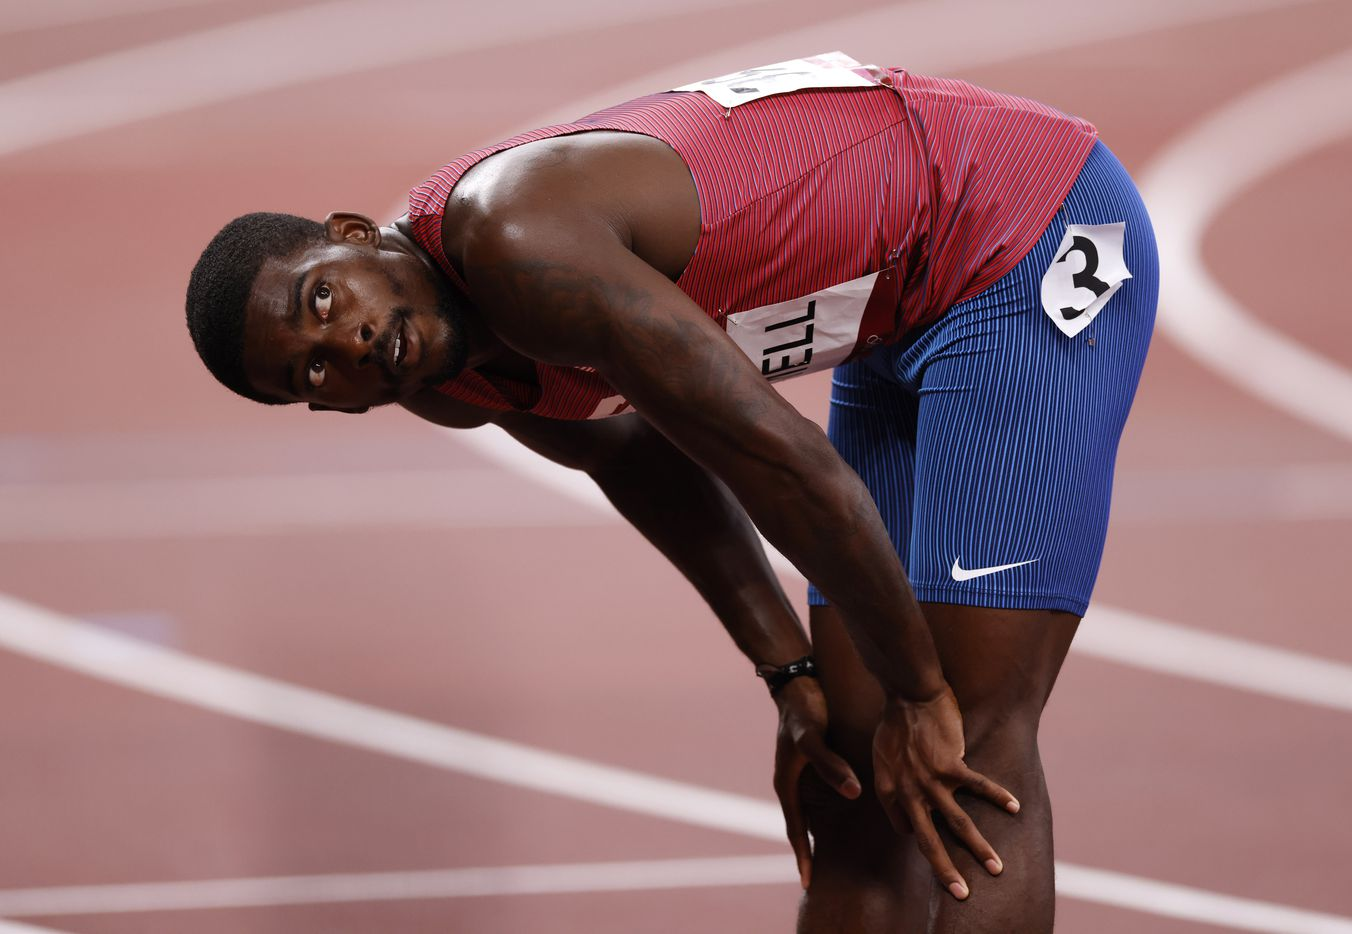 USA's Trayvon Bromell waits for the official time for his run in the men's 100 meter semifinal postponed 2020 Tokyo Olympics at Olympic Stadium, on Sunday, August 1, 2021, in Tokyo, Japan. Brommel finished with a time of 10.0 seconds and did not qualify for the final. (Vernon Bryant/The Dallas Morning News)